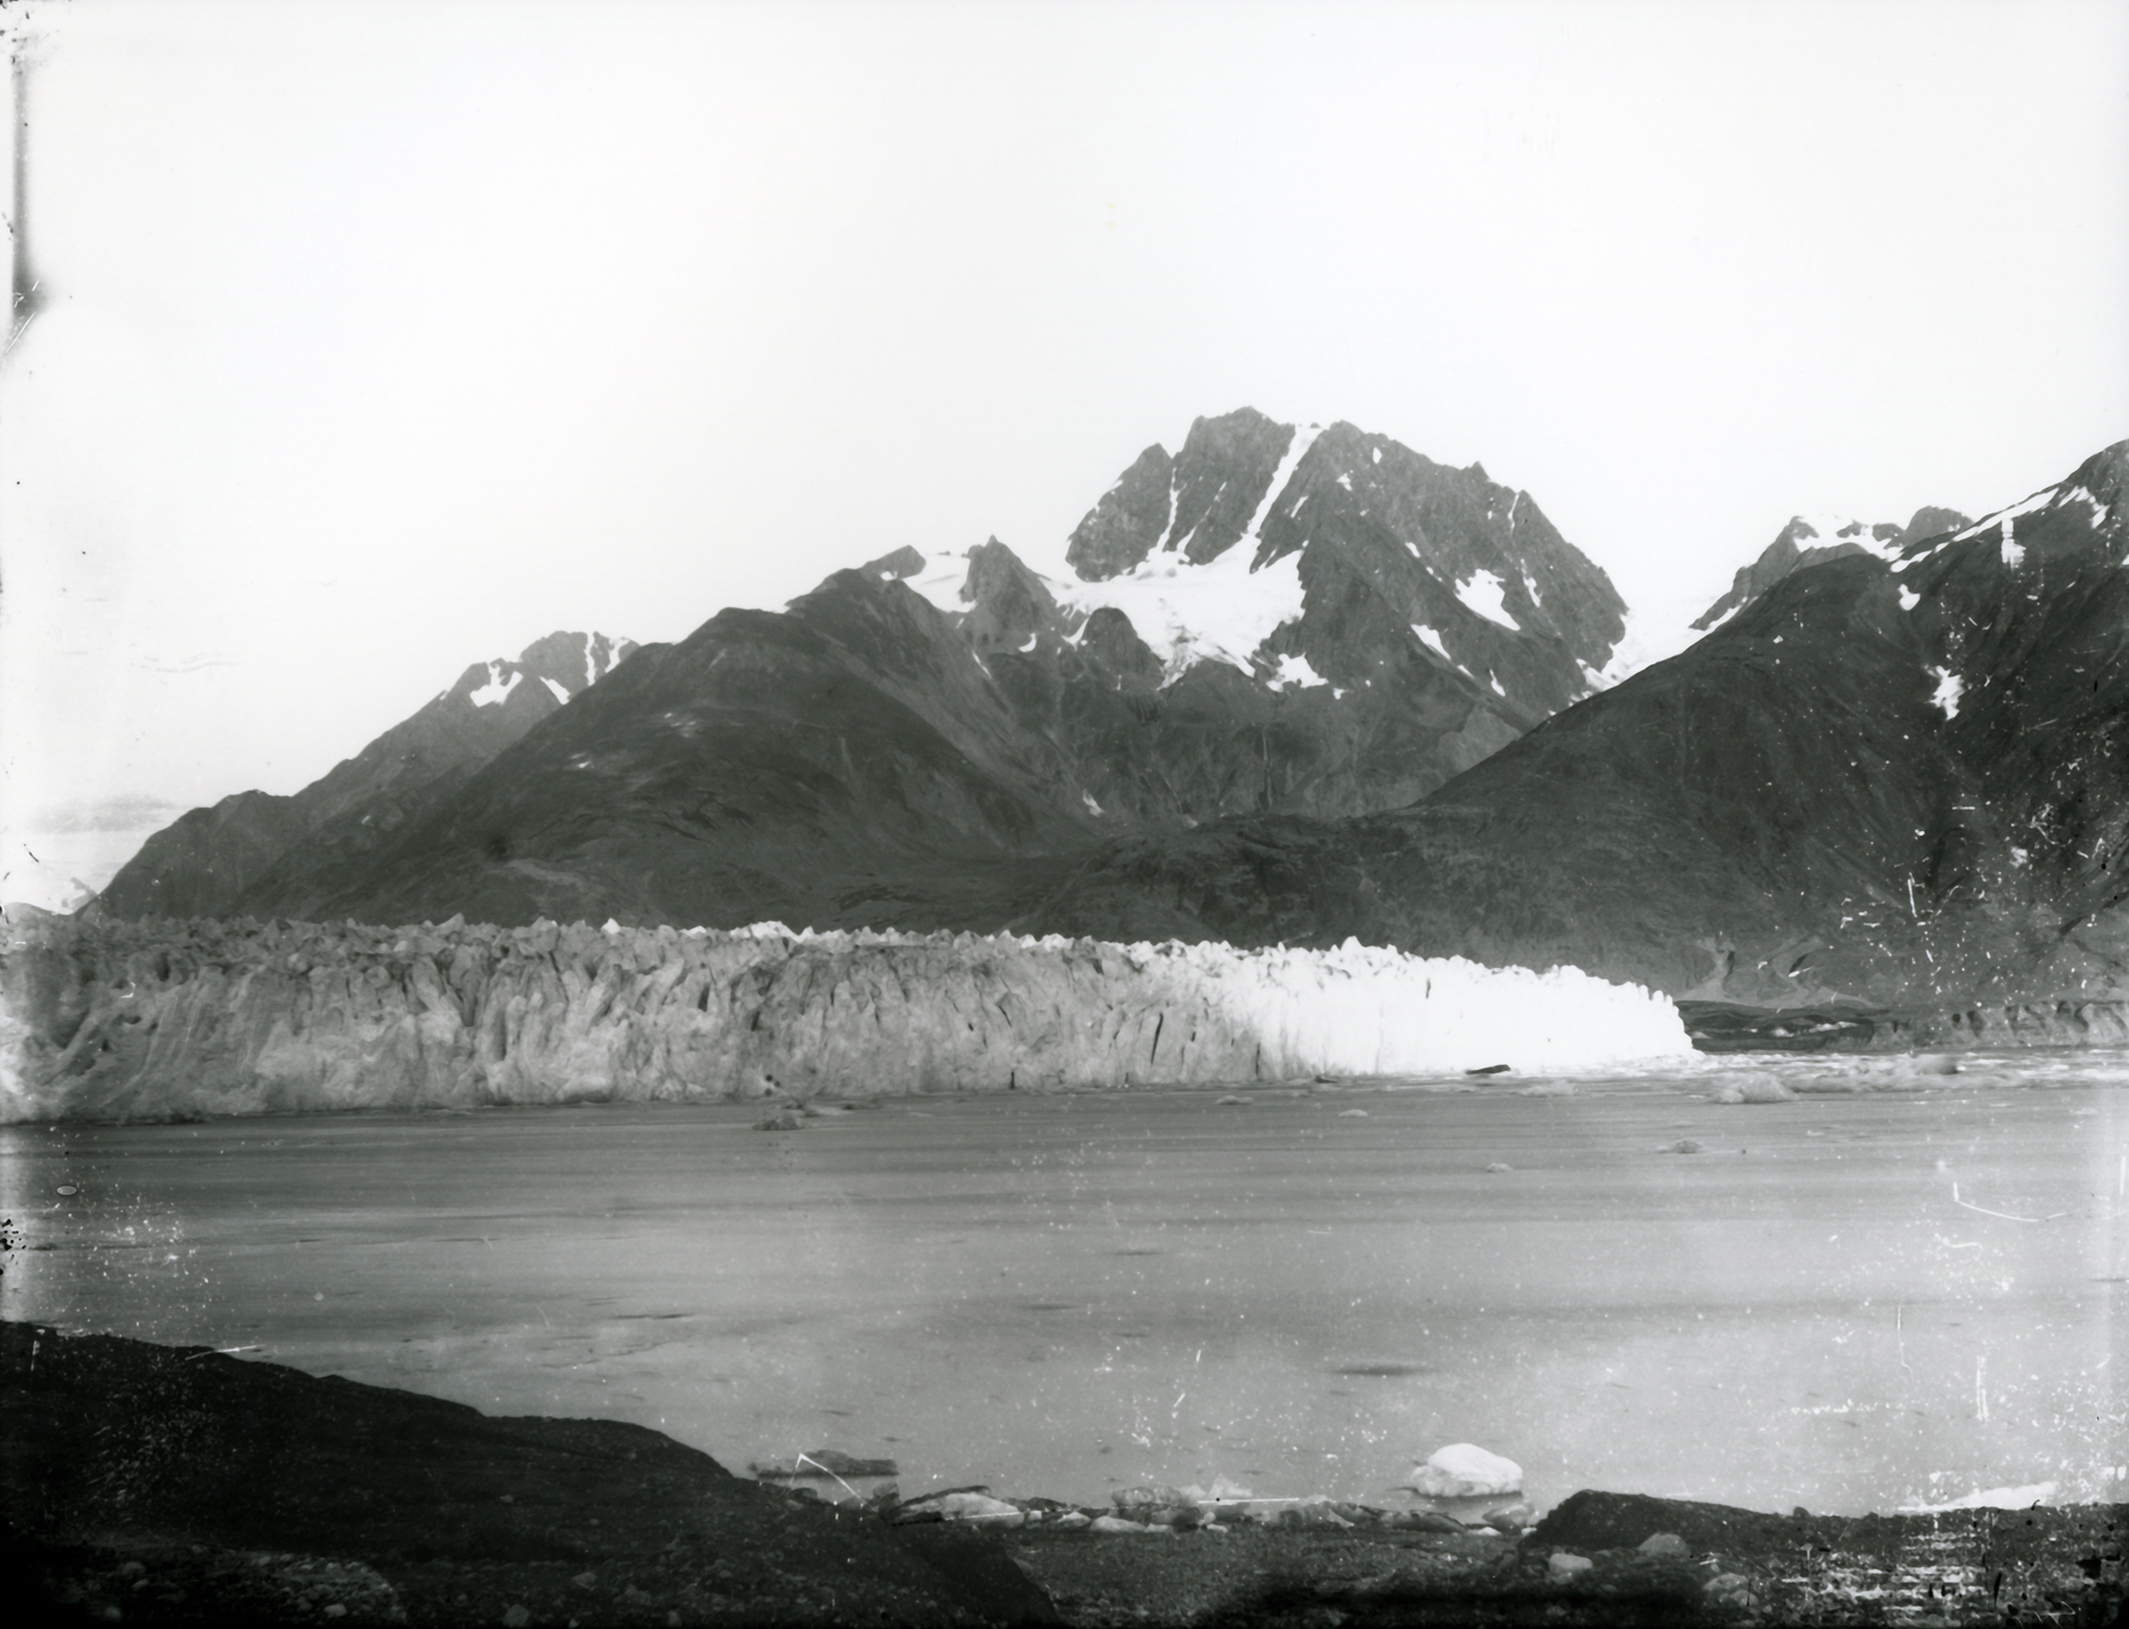 Glacier and Landscape Change in Response to Changing Climate